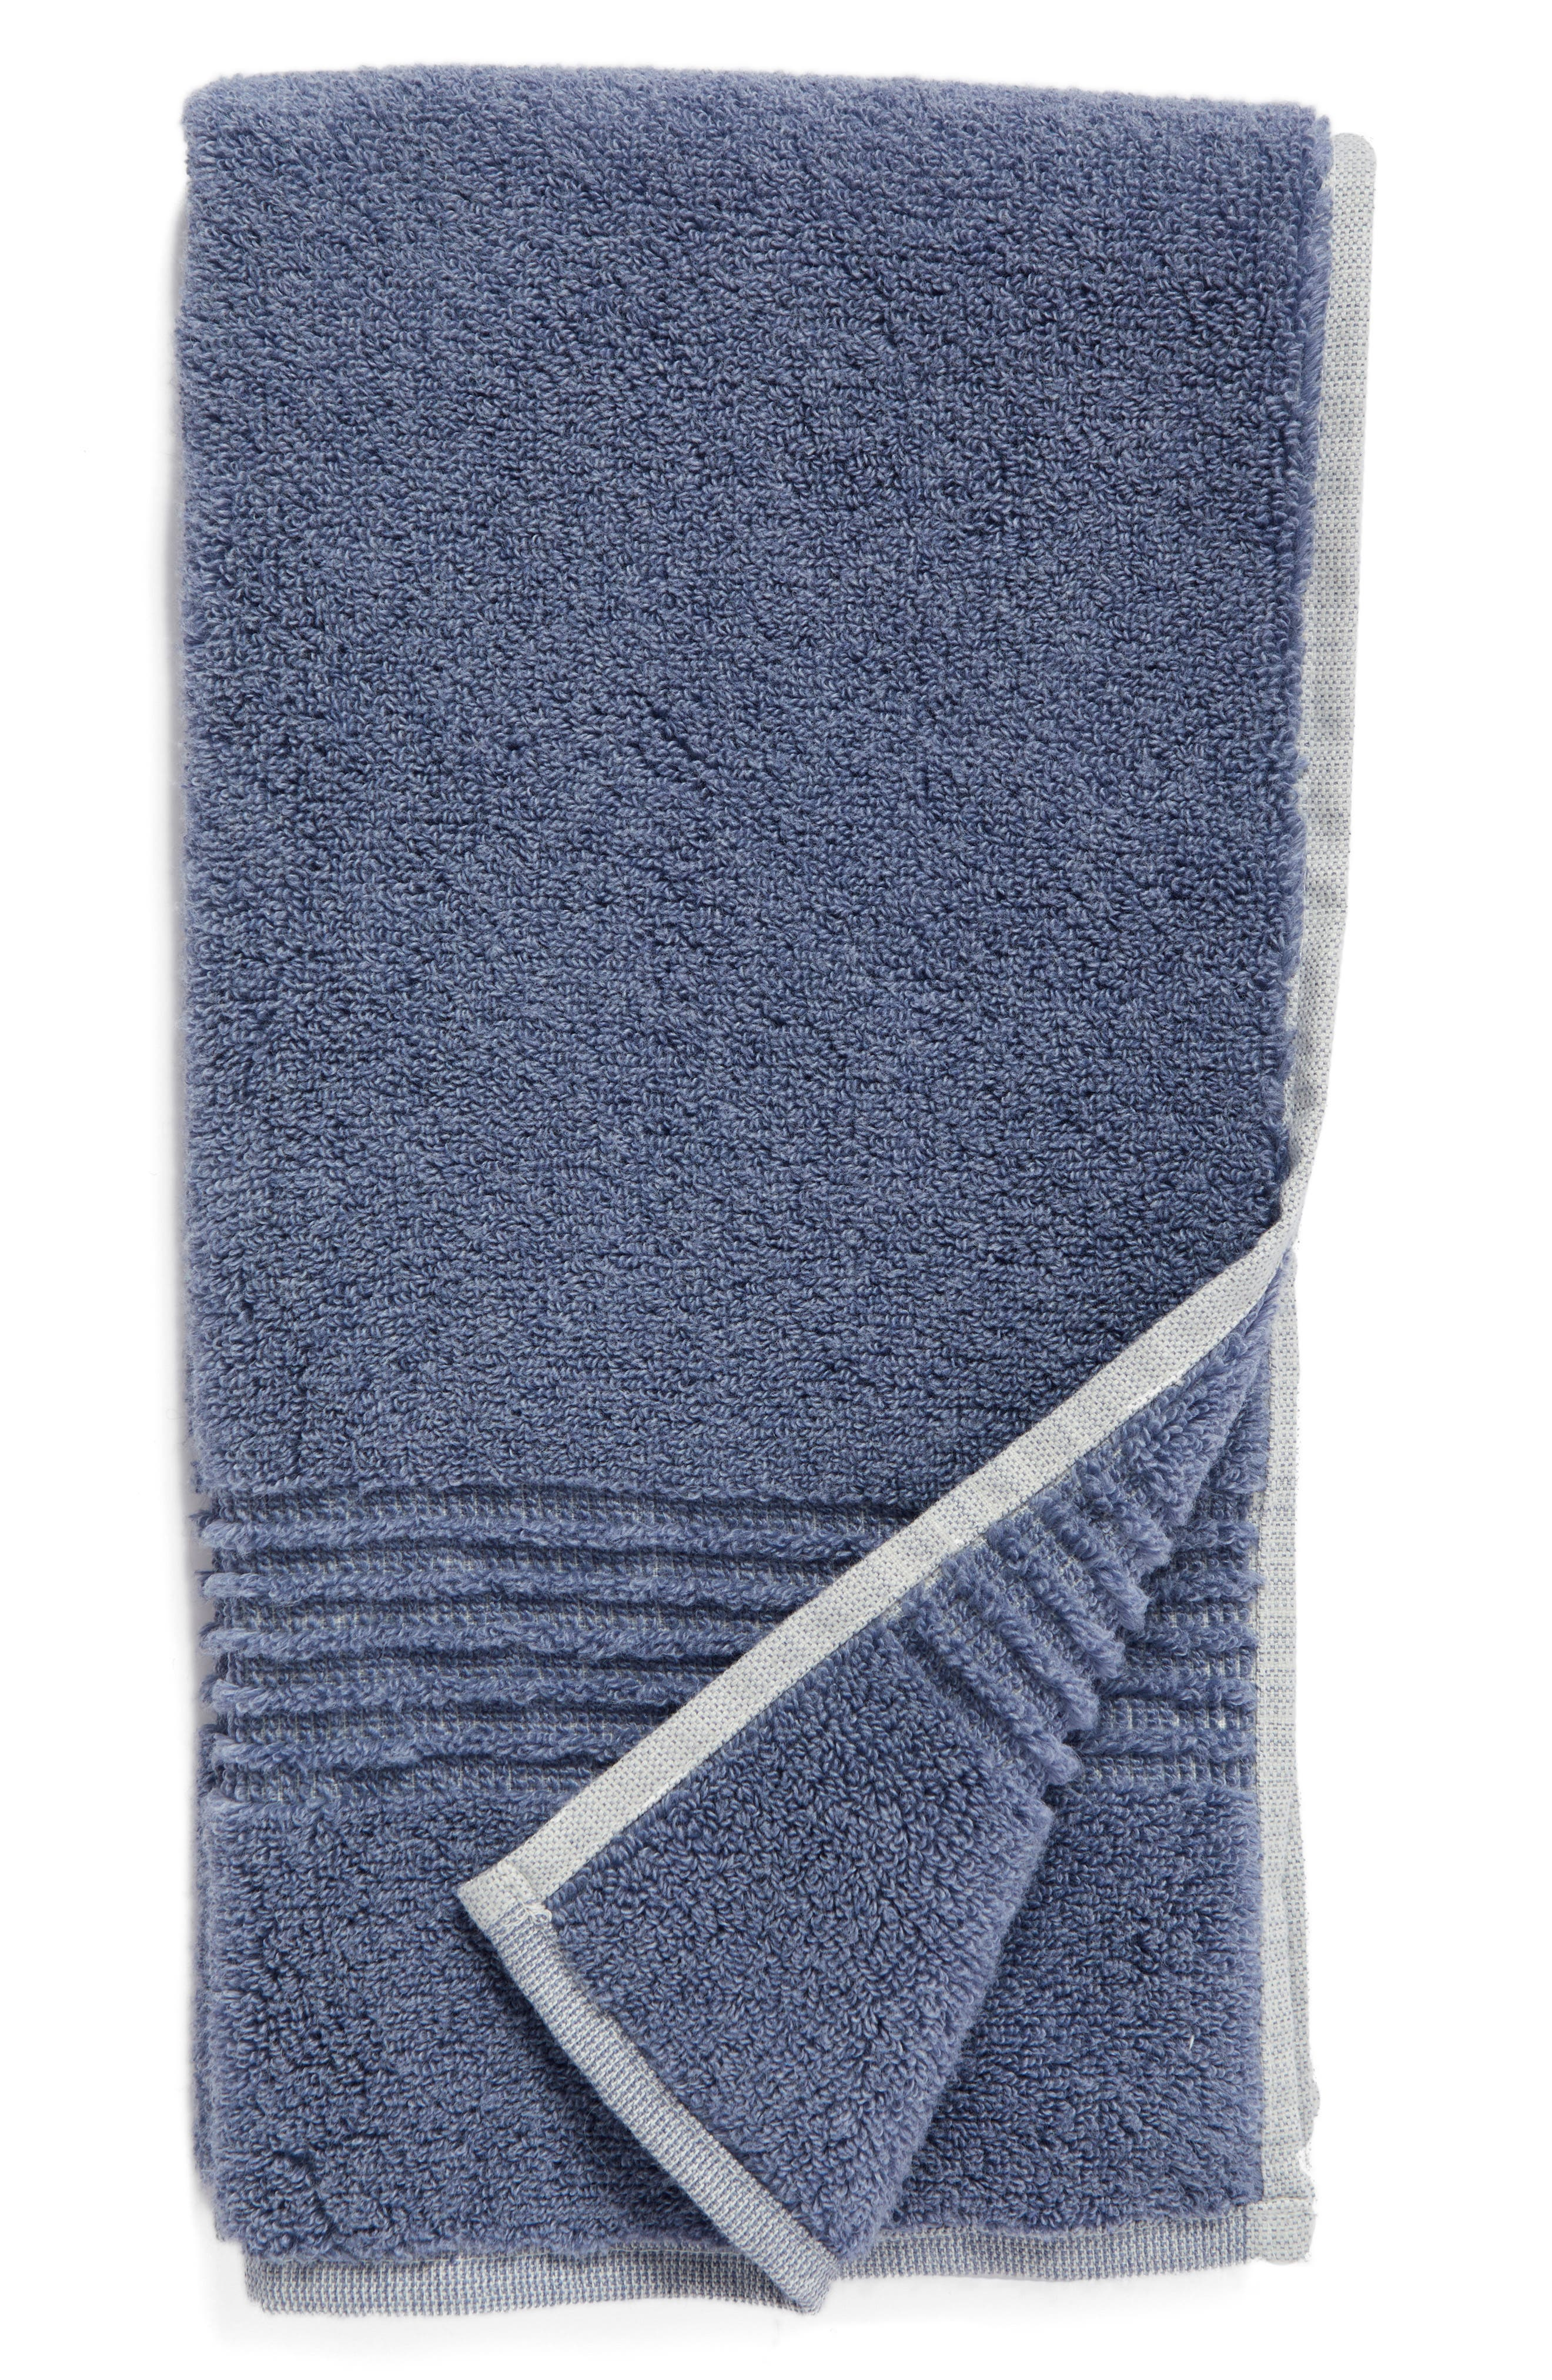 Nordstrom at Home Organic Hydrocotton Heathered Hand Towel (2 for $32)